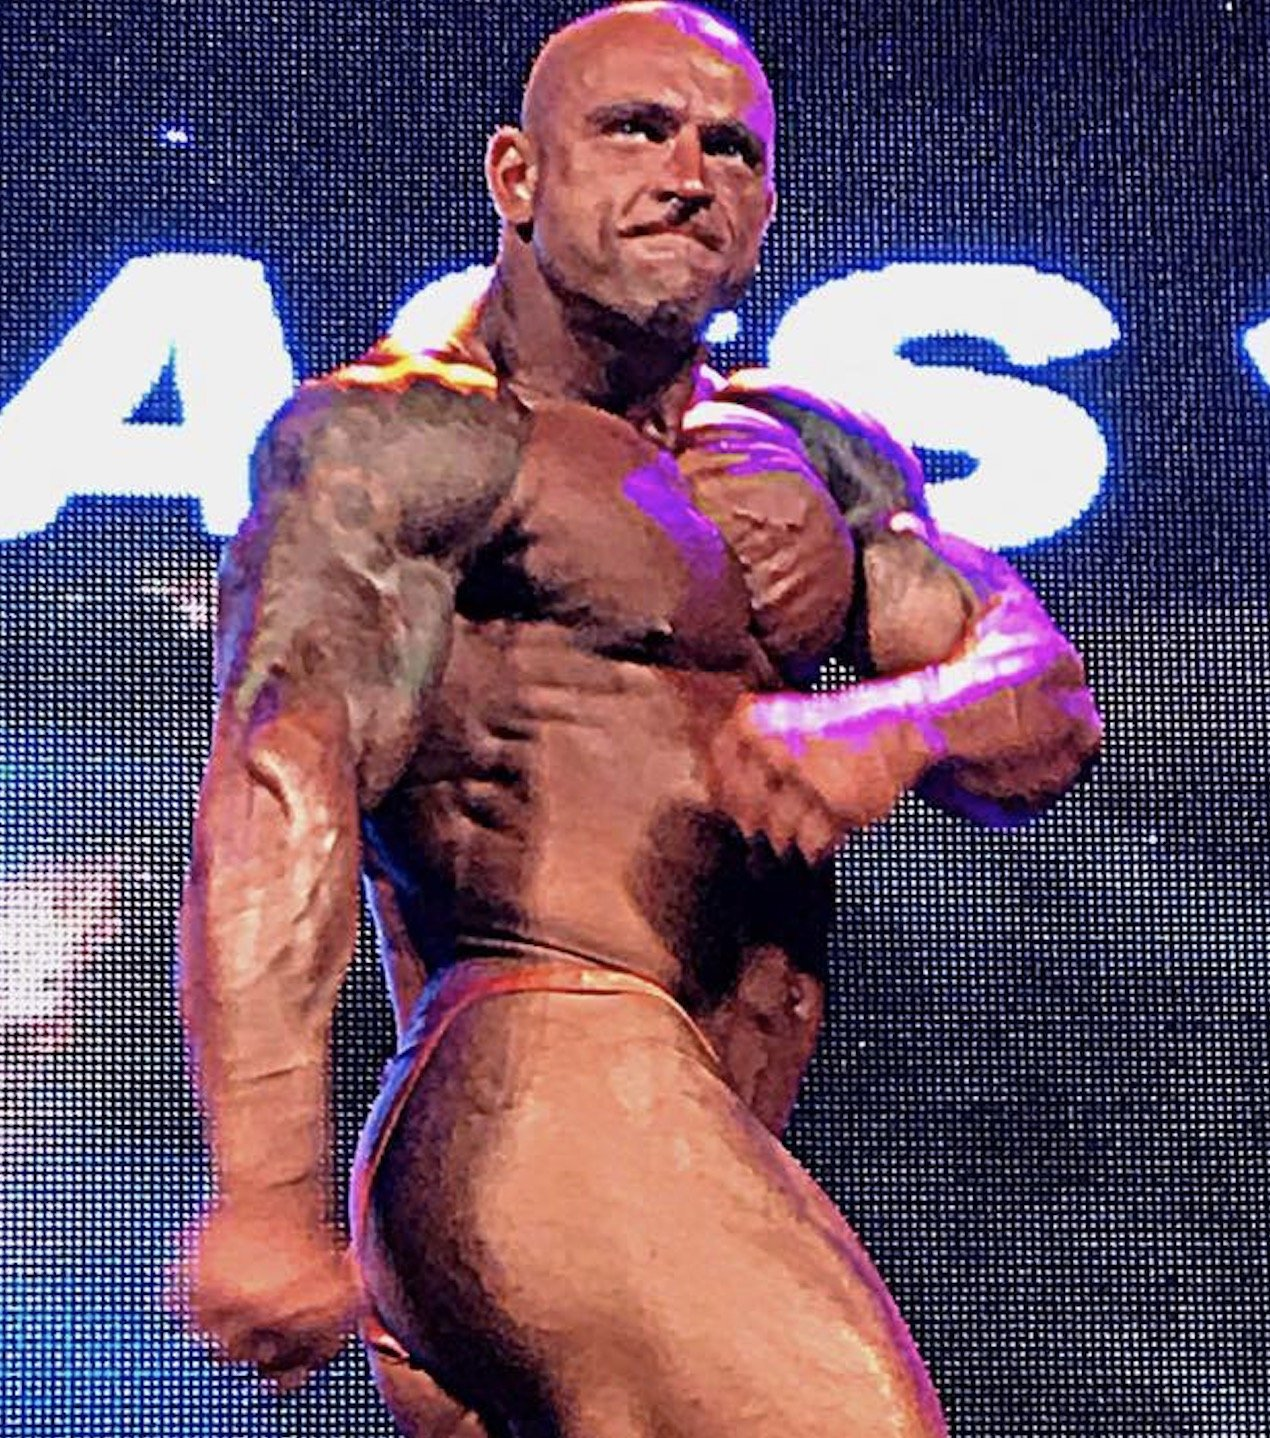 Darius Martinkus - 2017 NABBA Overall Mr Ireland winner